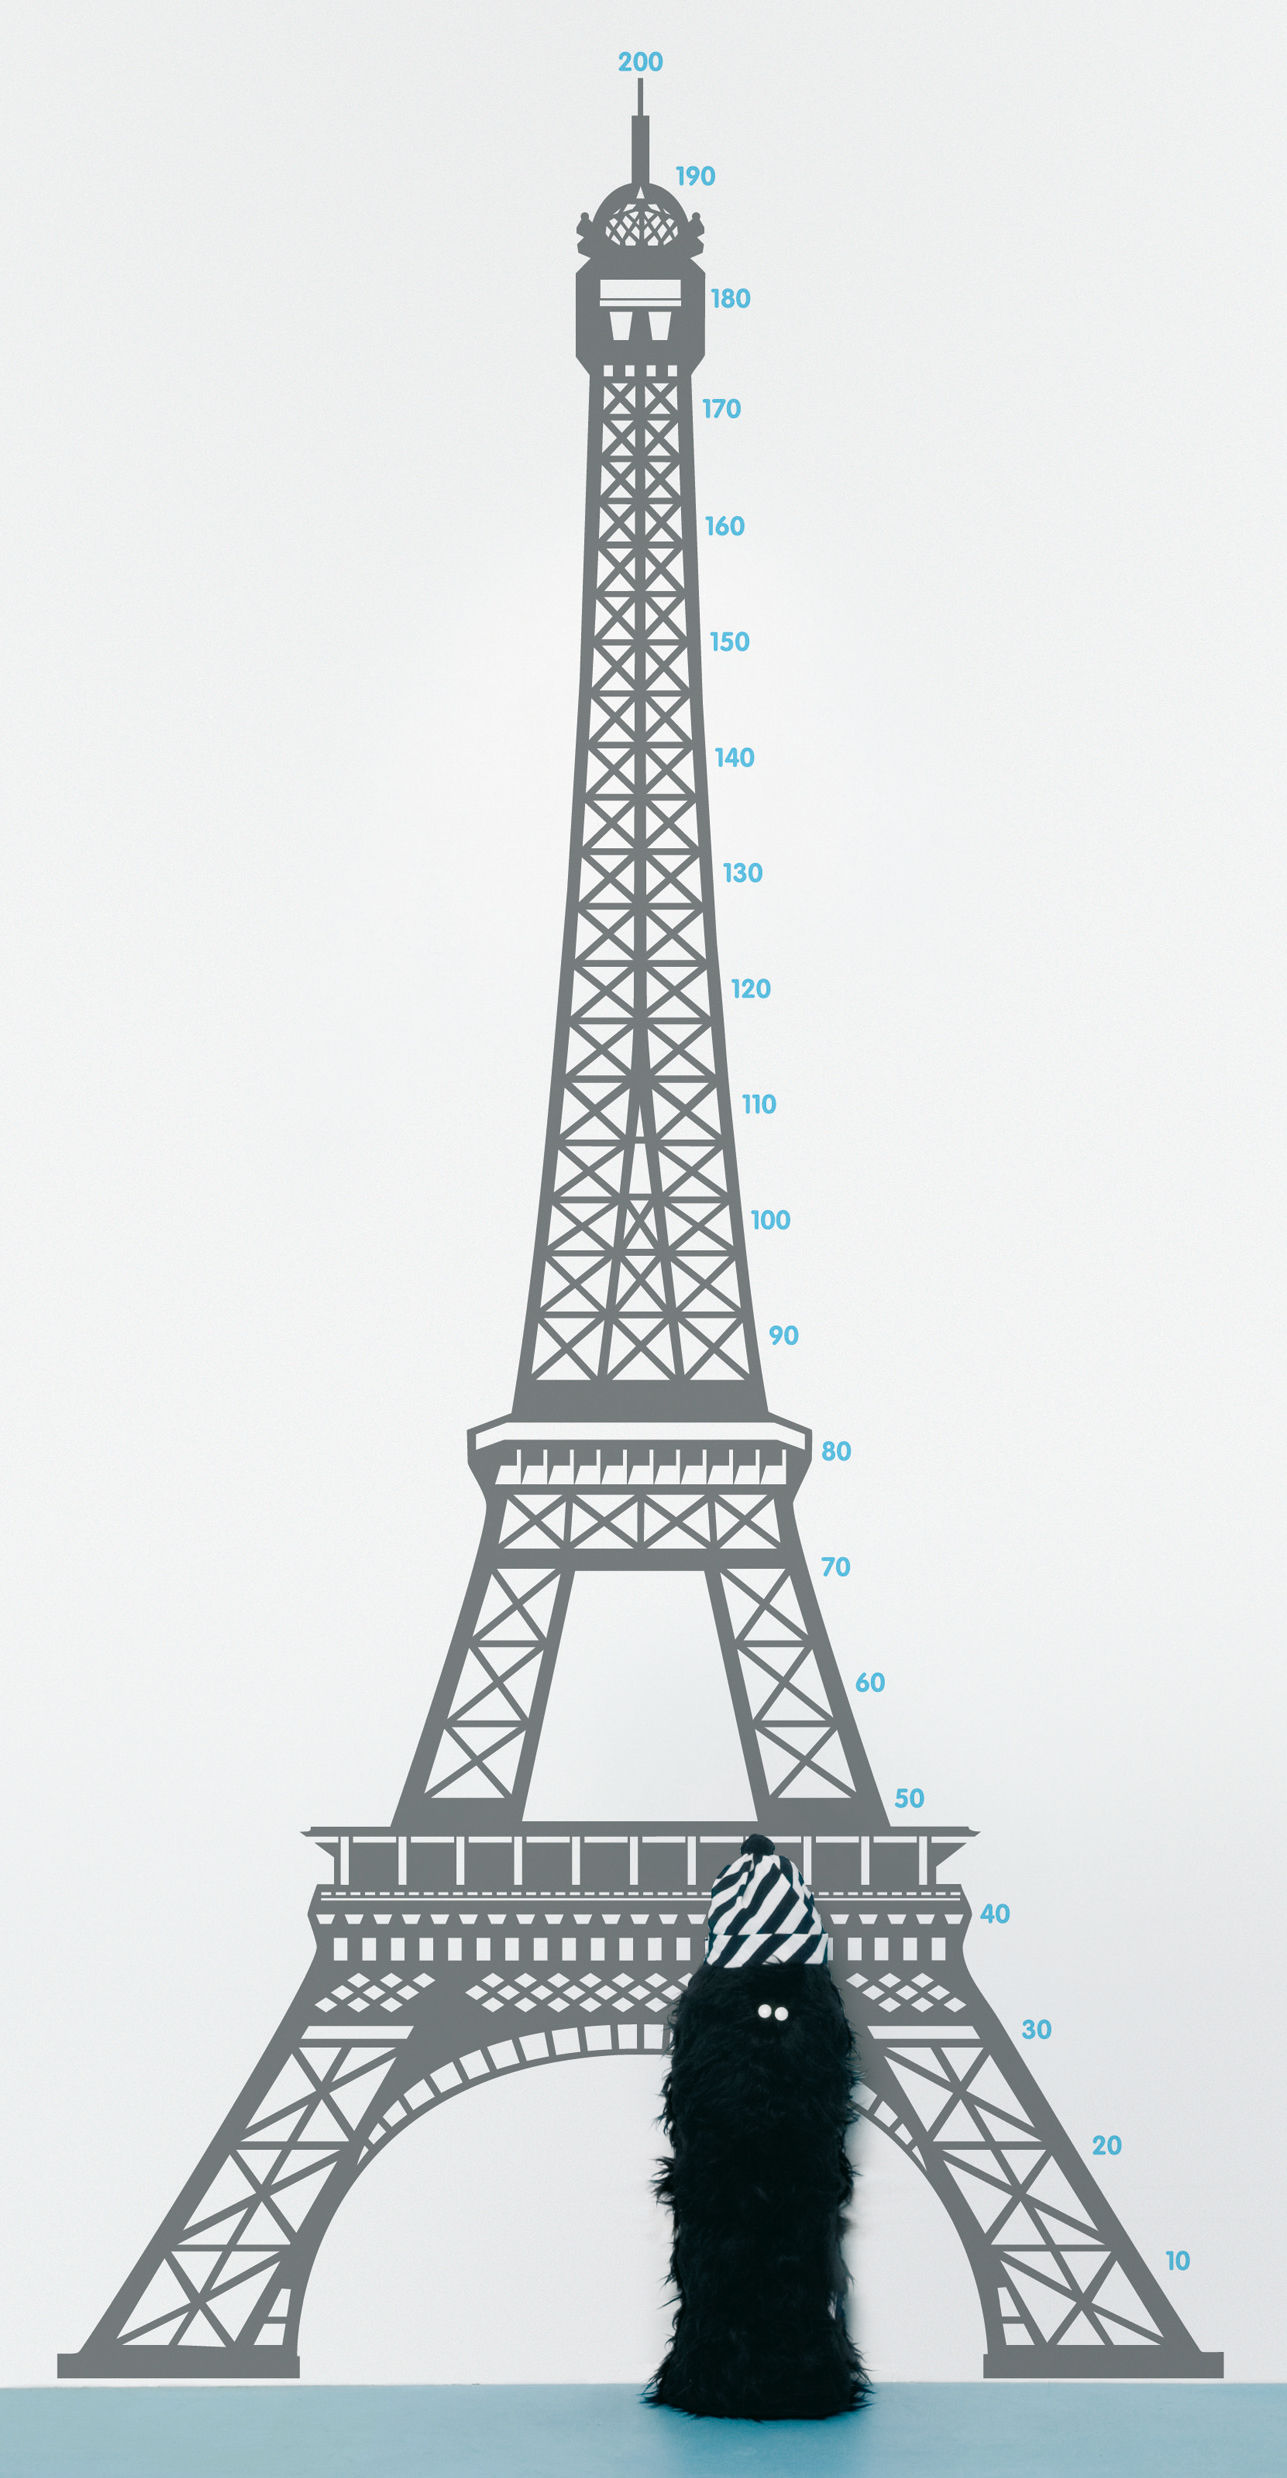 Decoration - Children's Home Accessories - Measuring souvenir from Paris Sticker - Height gauge by Domestic -  - Vinal